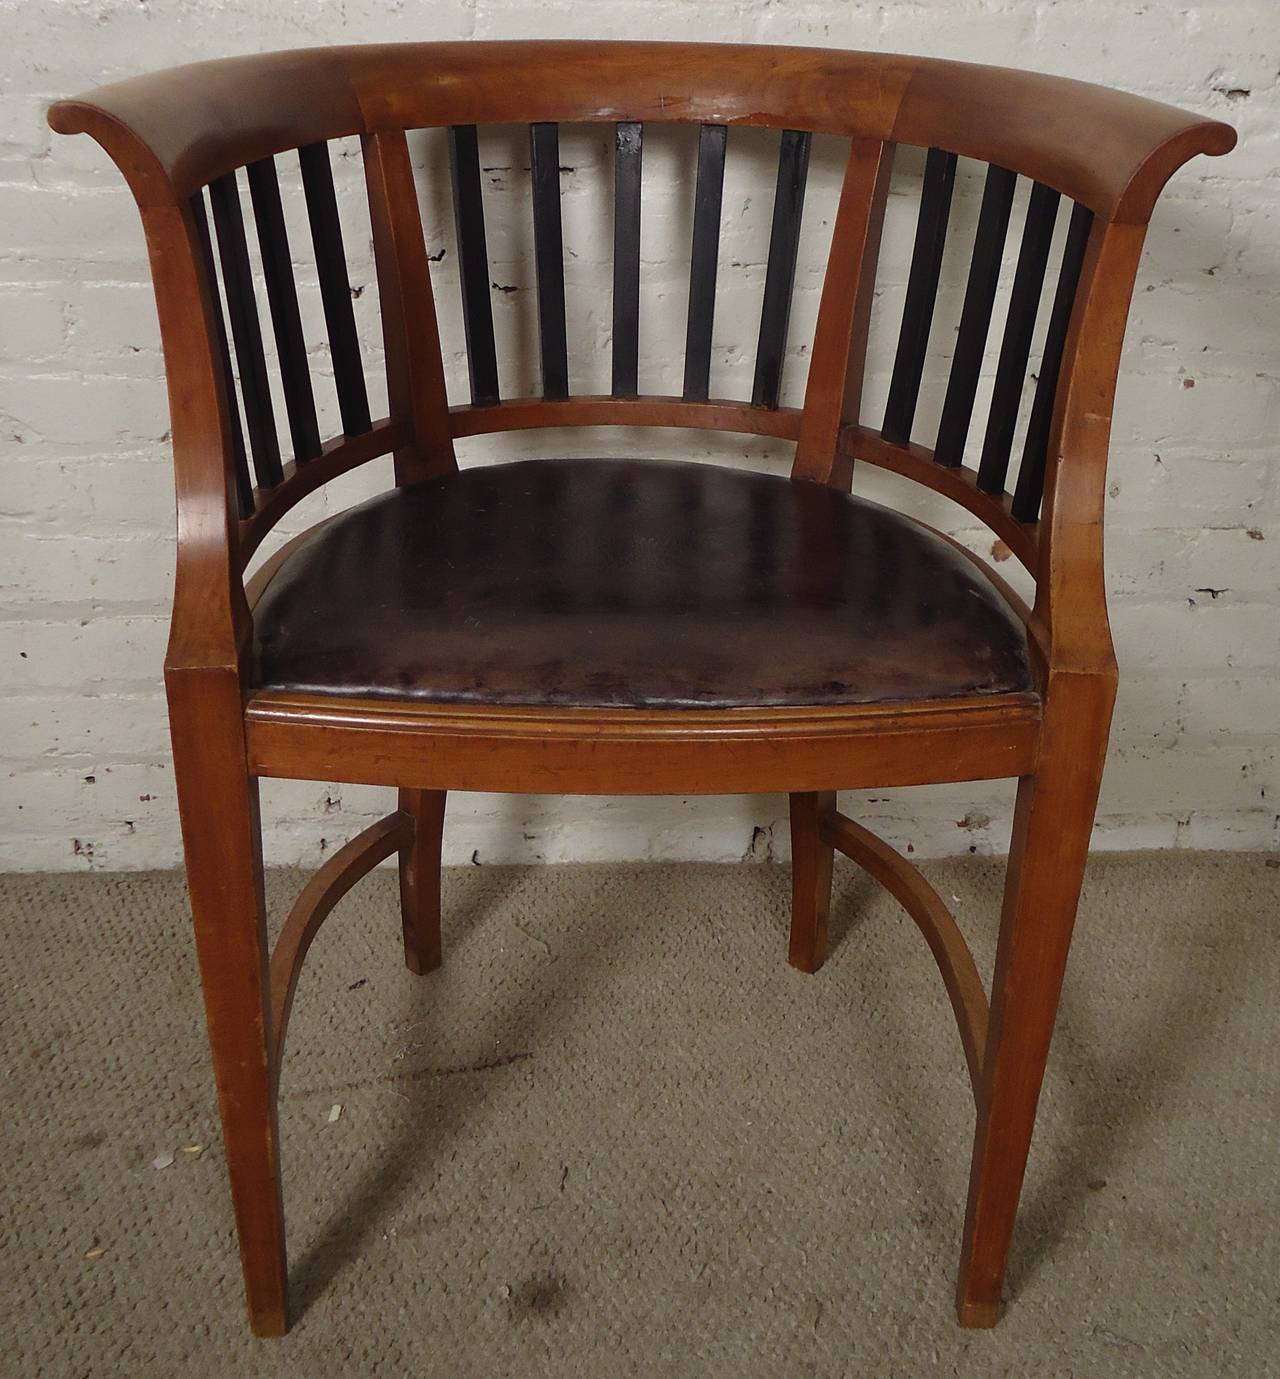 Unique Vintage Round Back Spindle Chair 2 - Unique Vintage Round Back Spindle Chair For Sale At 1stdibs